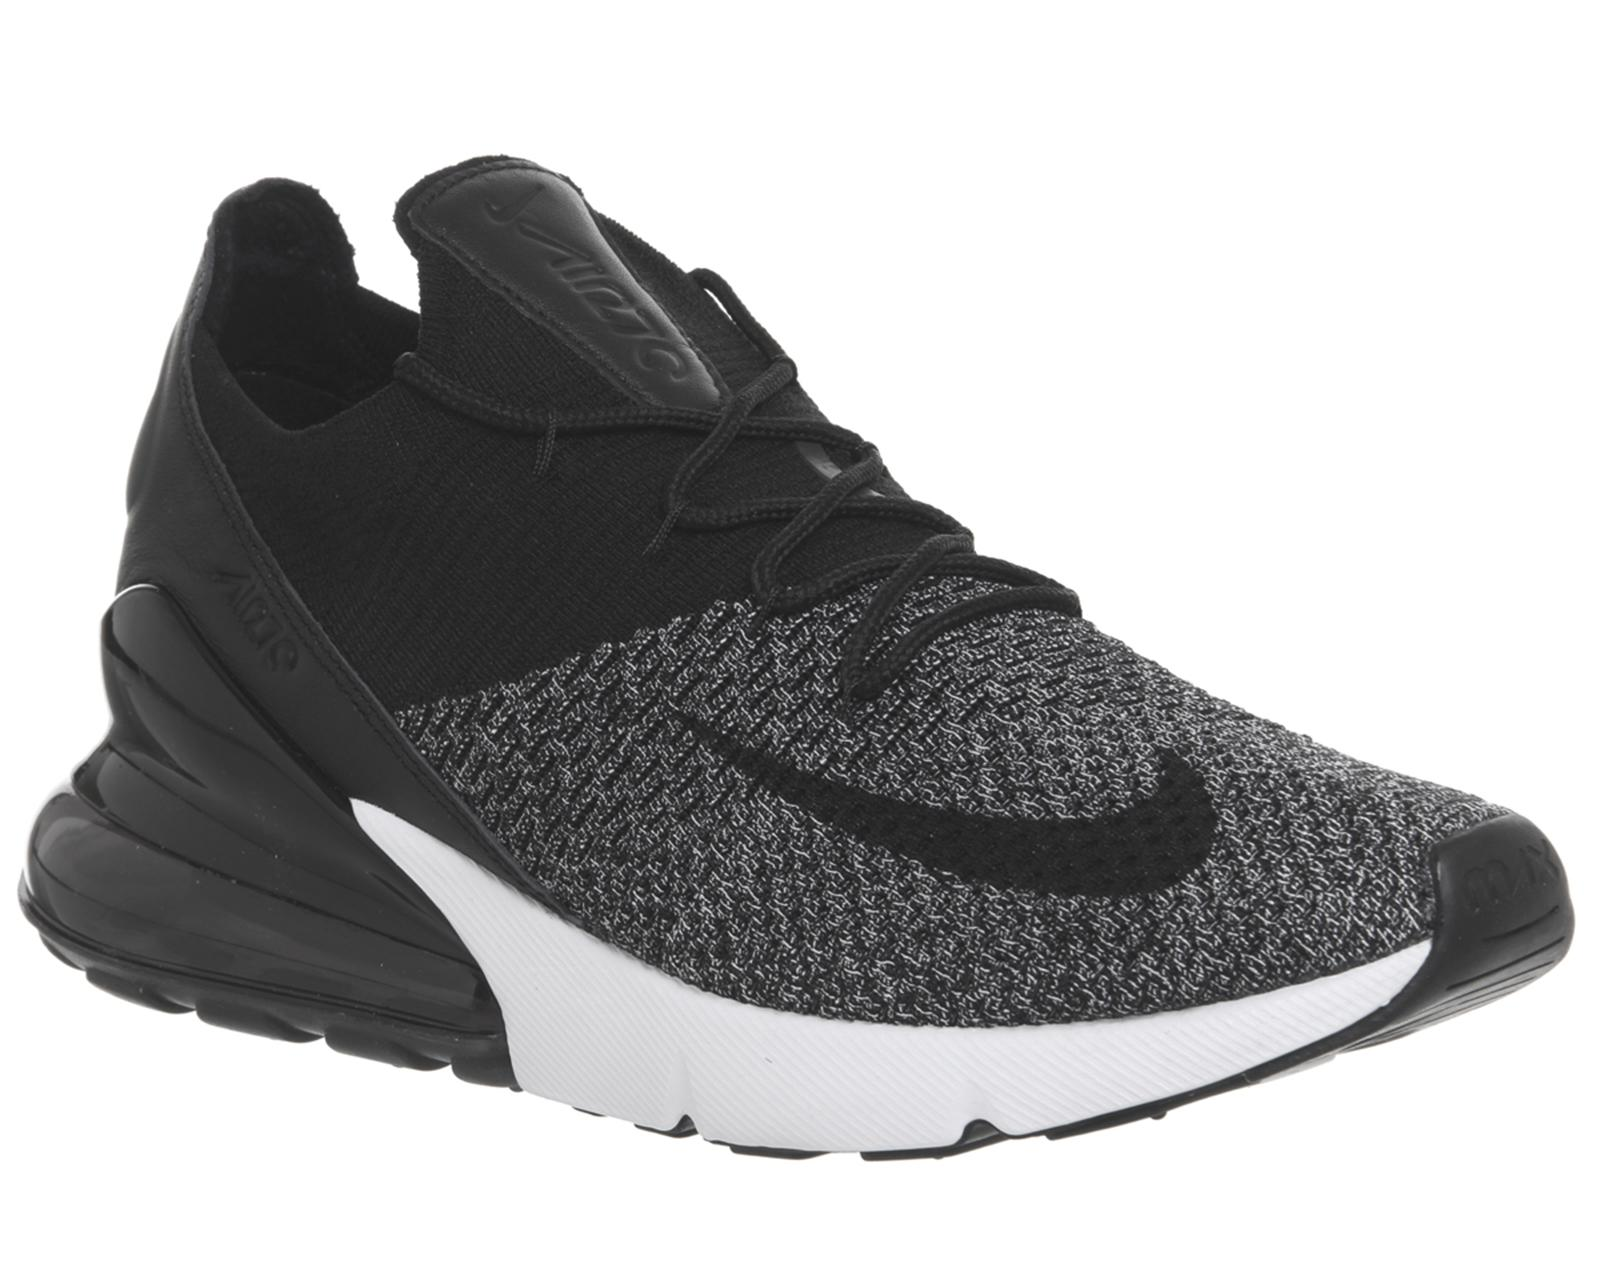 6697cceb2240 Nike Air Max 270 Flyknit Trainers in Black for Men - Lyst